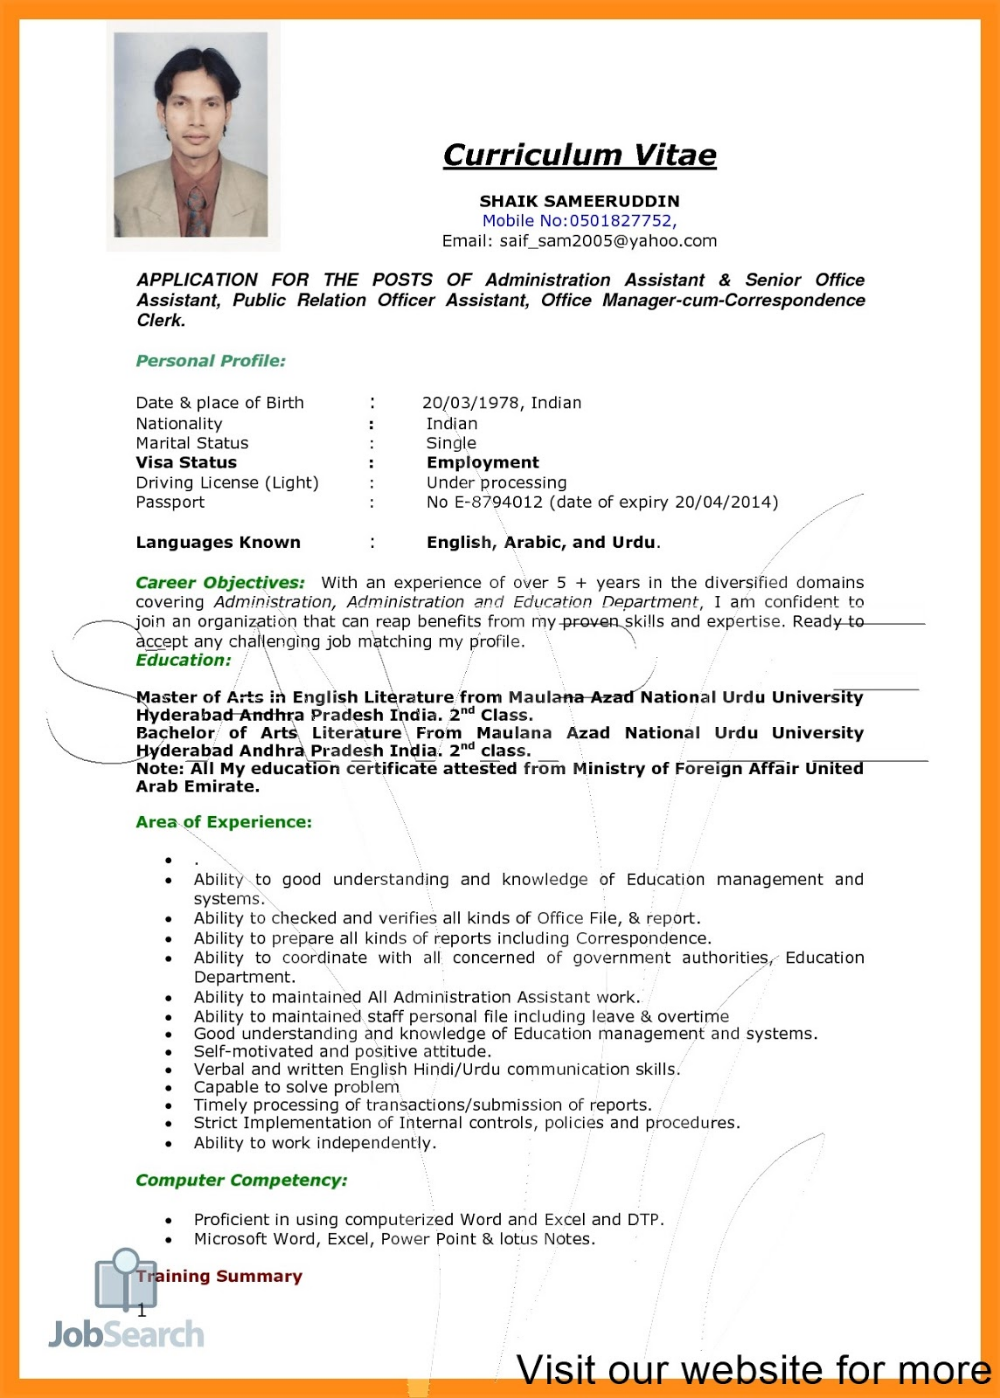 Job Resume Pdf 2020 Job Resume For Freshers In 2020 With Images